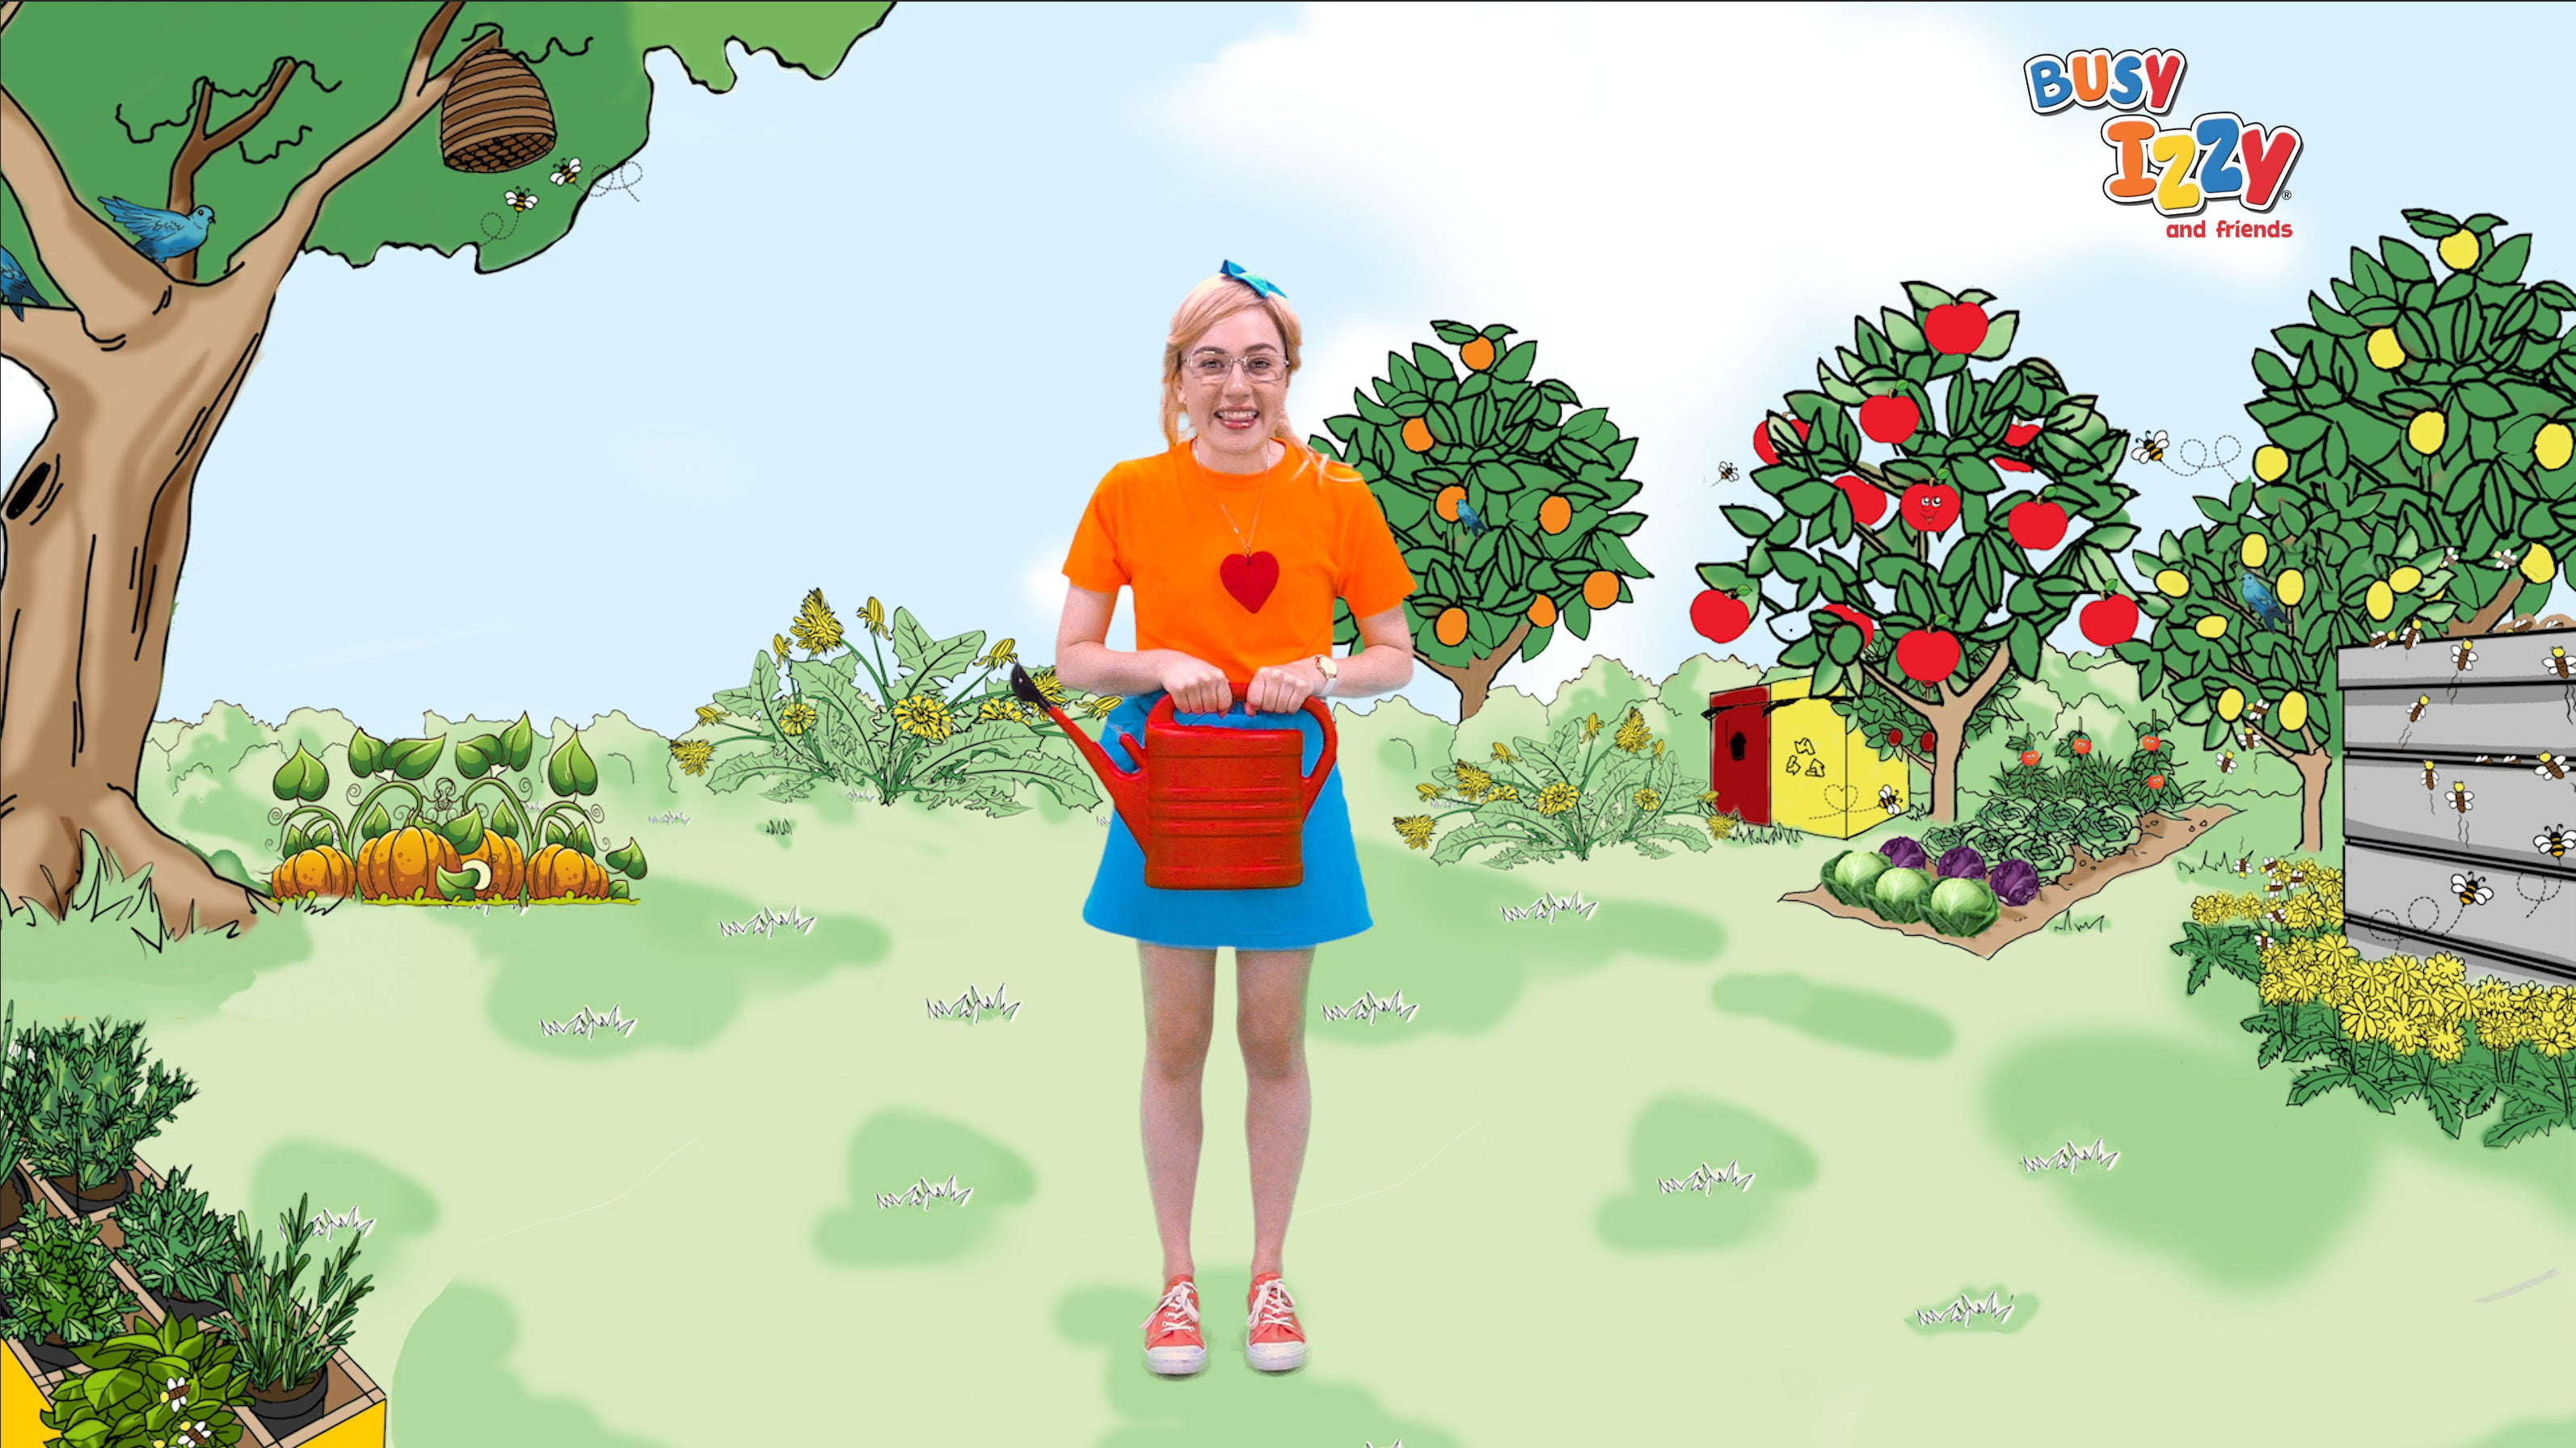 Busy Izzy watering her garden and citrus trees.